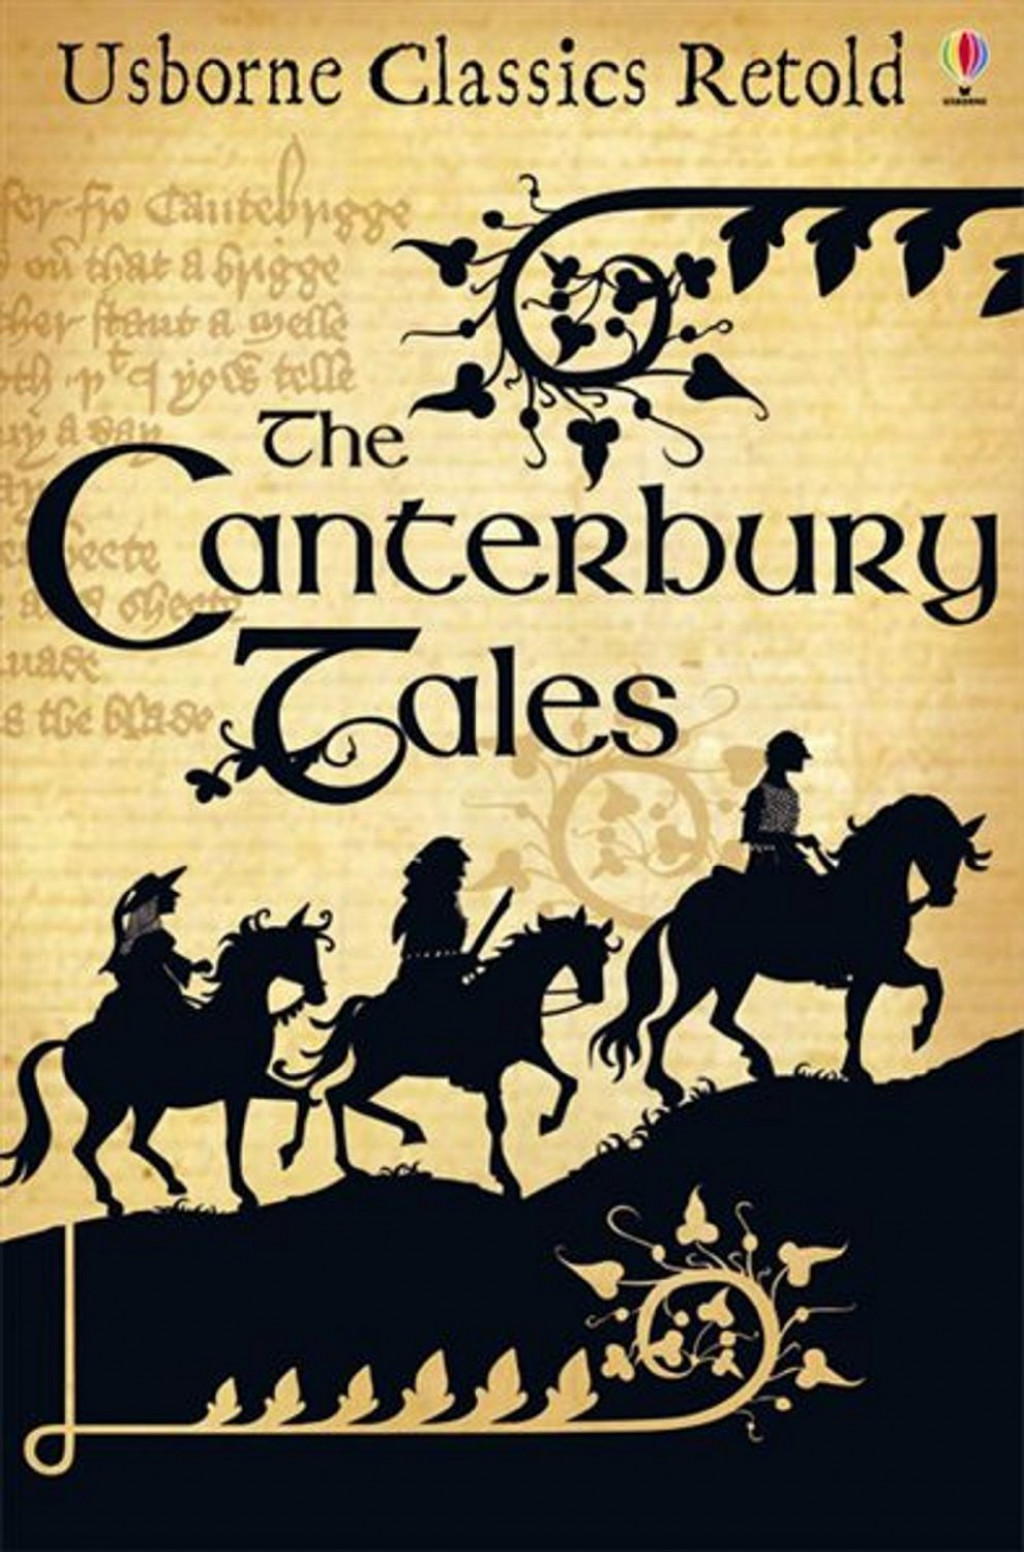 canterbury tales the theme of pilgrimage english literature essay Geoffrey chaucer known as the father of english literature, is widely considered  the greatest  the canterbury tales contrasts with other literature of the period  in the naturalism of its narrative, the variety of  chaucer drew on real life for his  cast of pilgrims: the innkeeper shares the name of a contemporary keeper of an.